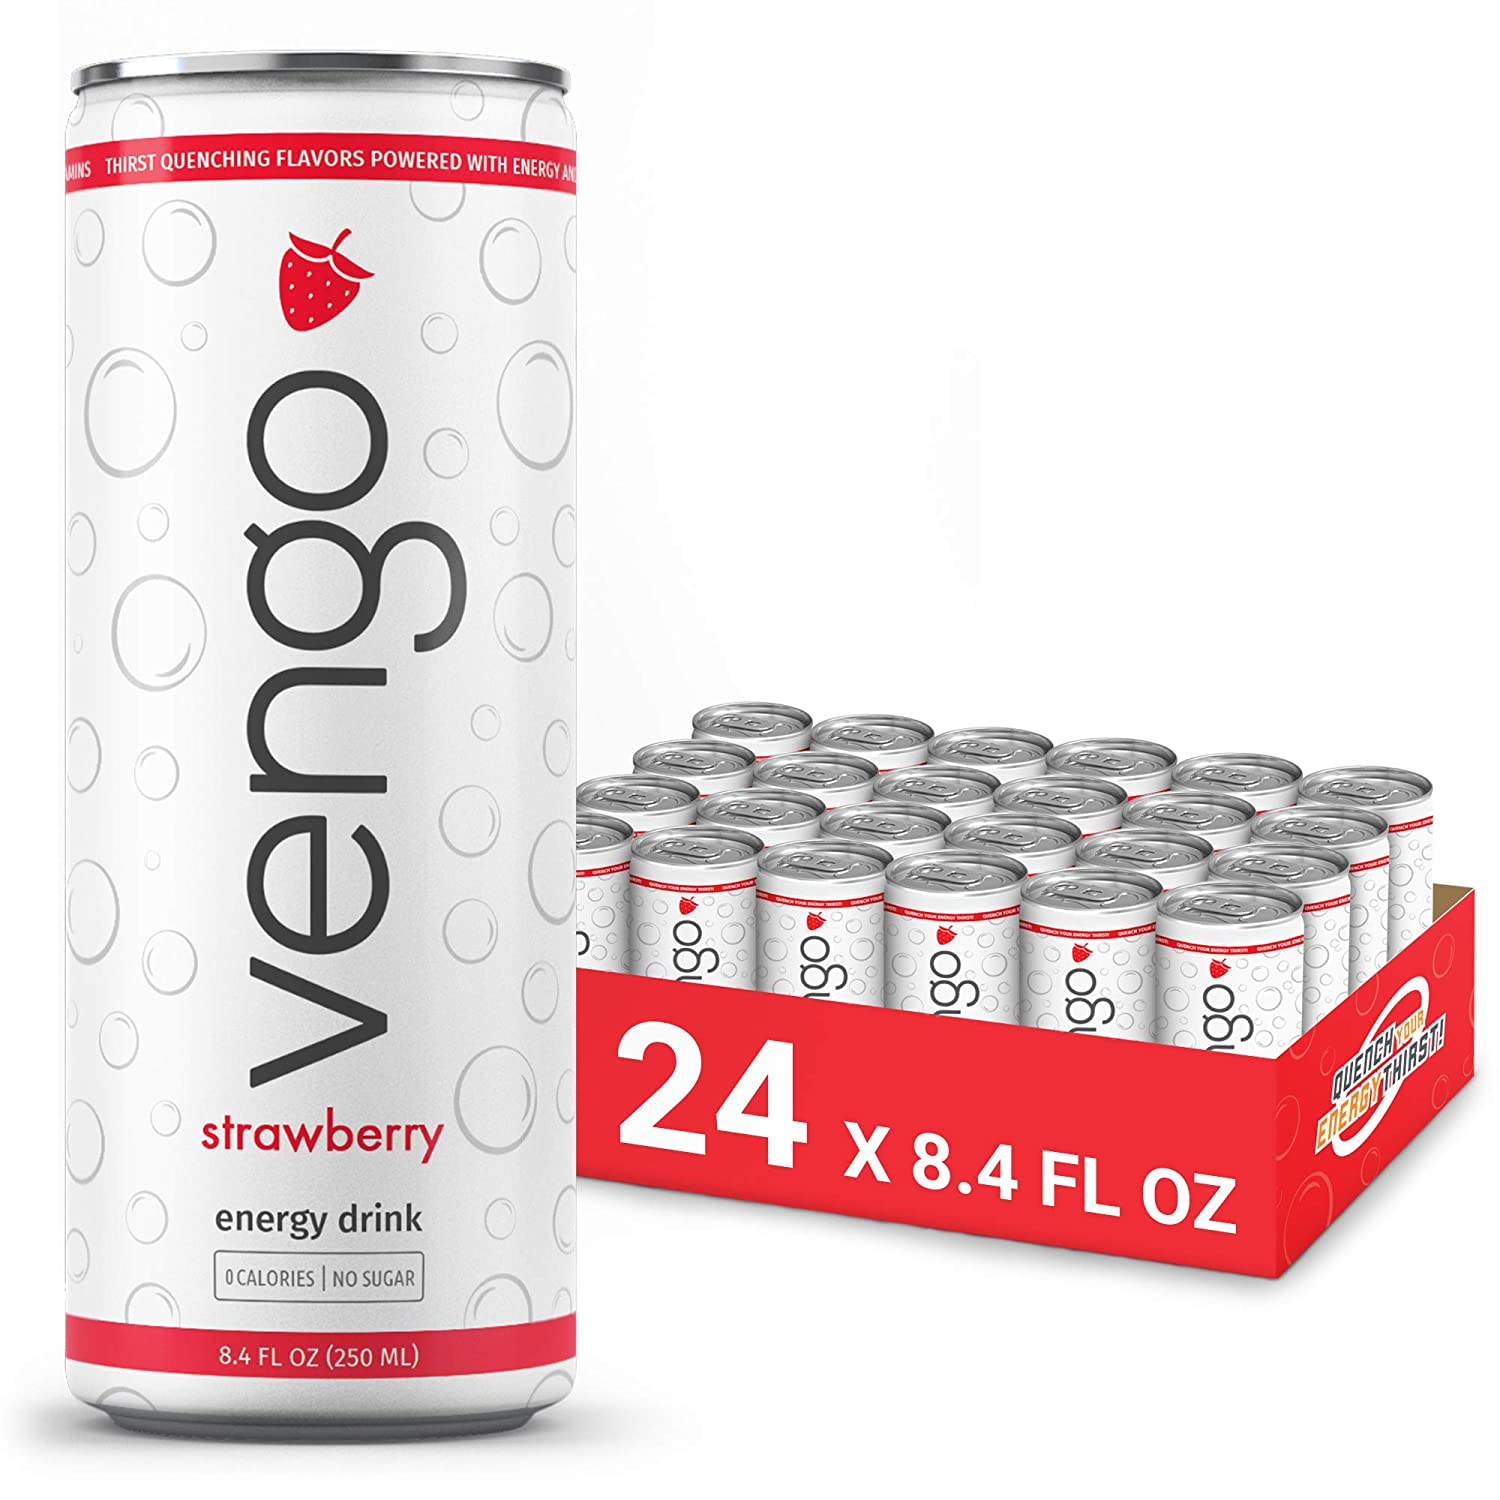 Vengo Energy Drink - Strawberry (24 Pack / 8.4 FL OZ), Zero Calorie, Sugar Free, Natural Vitamin B6 and B12